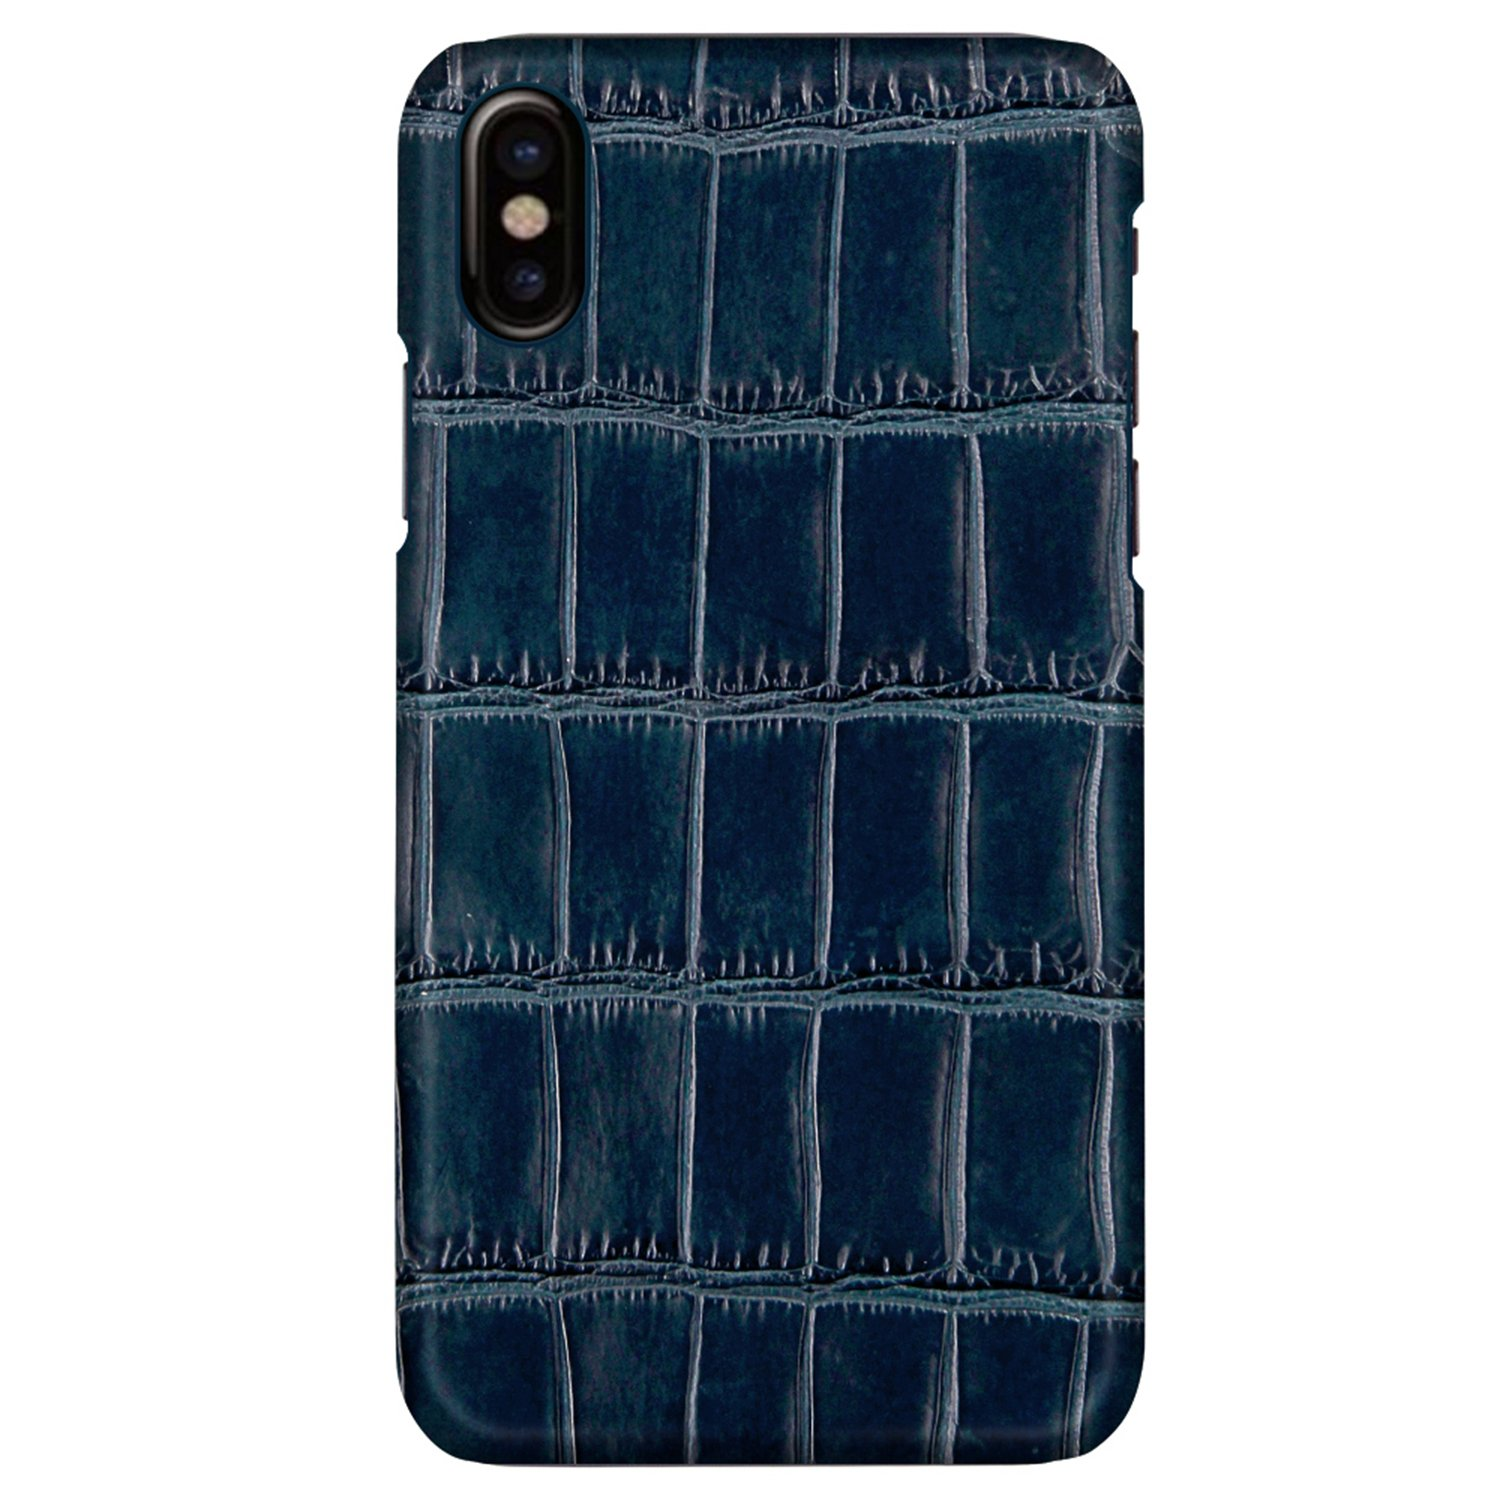 UU&T Luxury Case Classic Crocodile Belly Leather Lightweight Hardshell Back Case for iPhone X 5.8 Inch (Dark Blue)